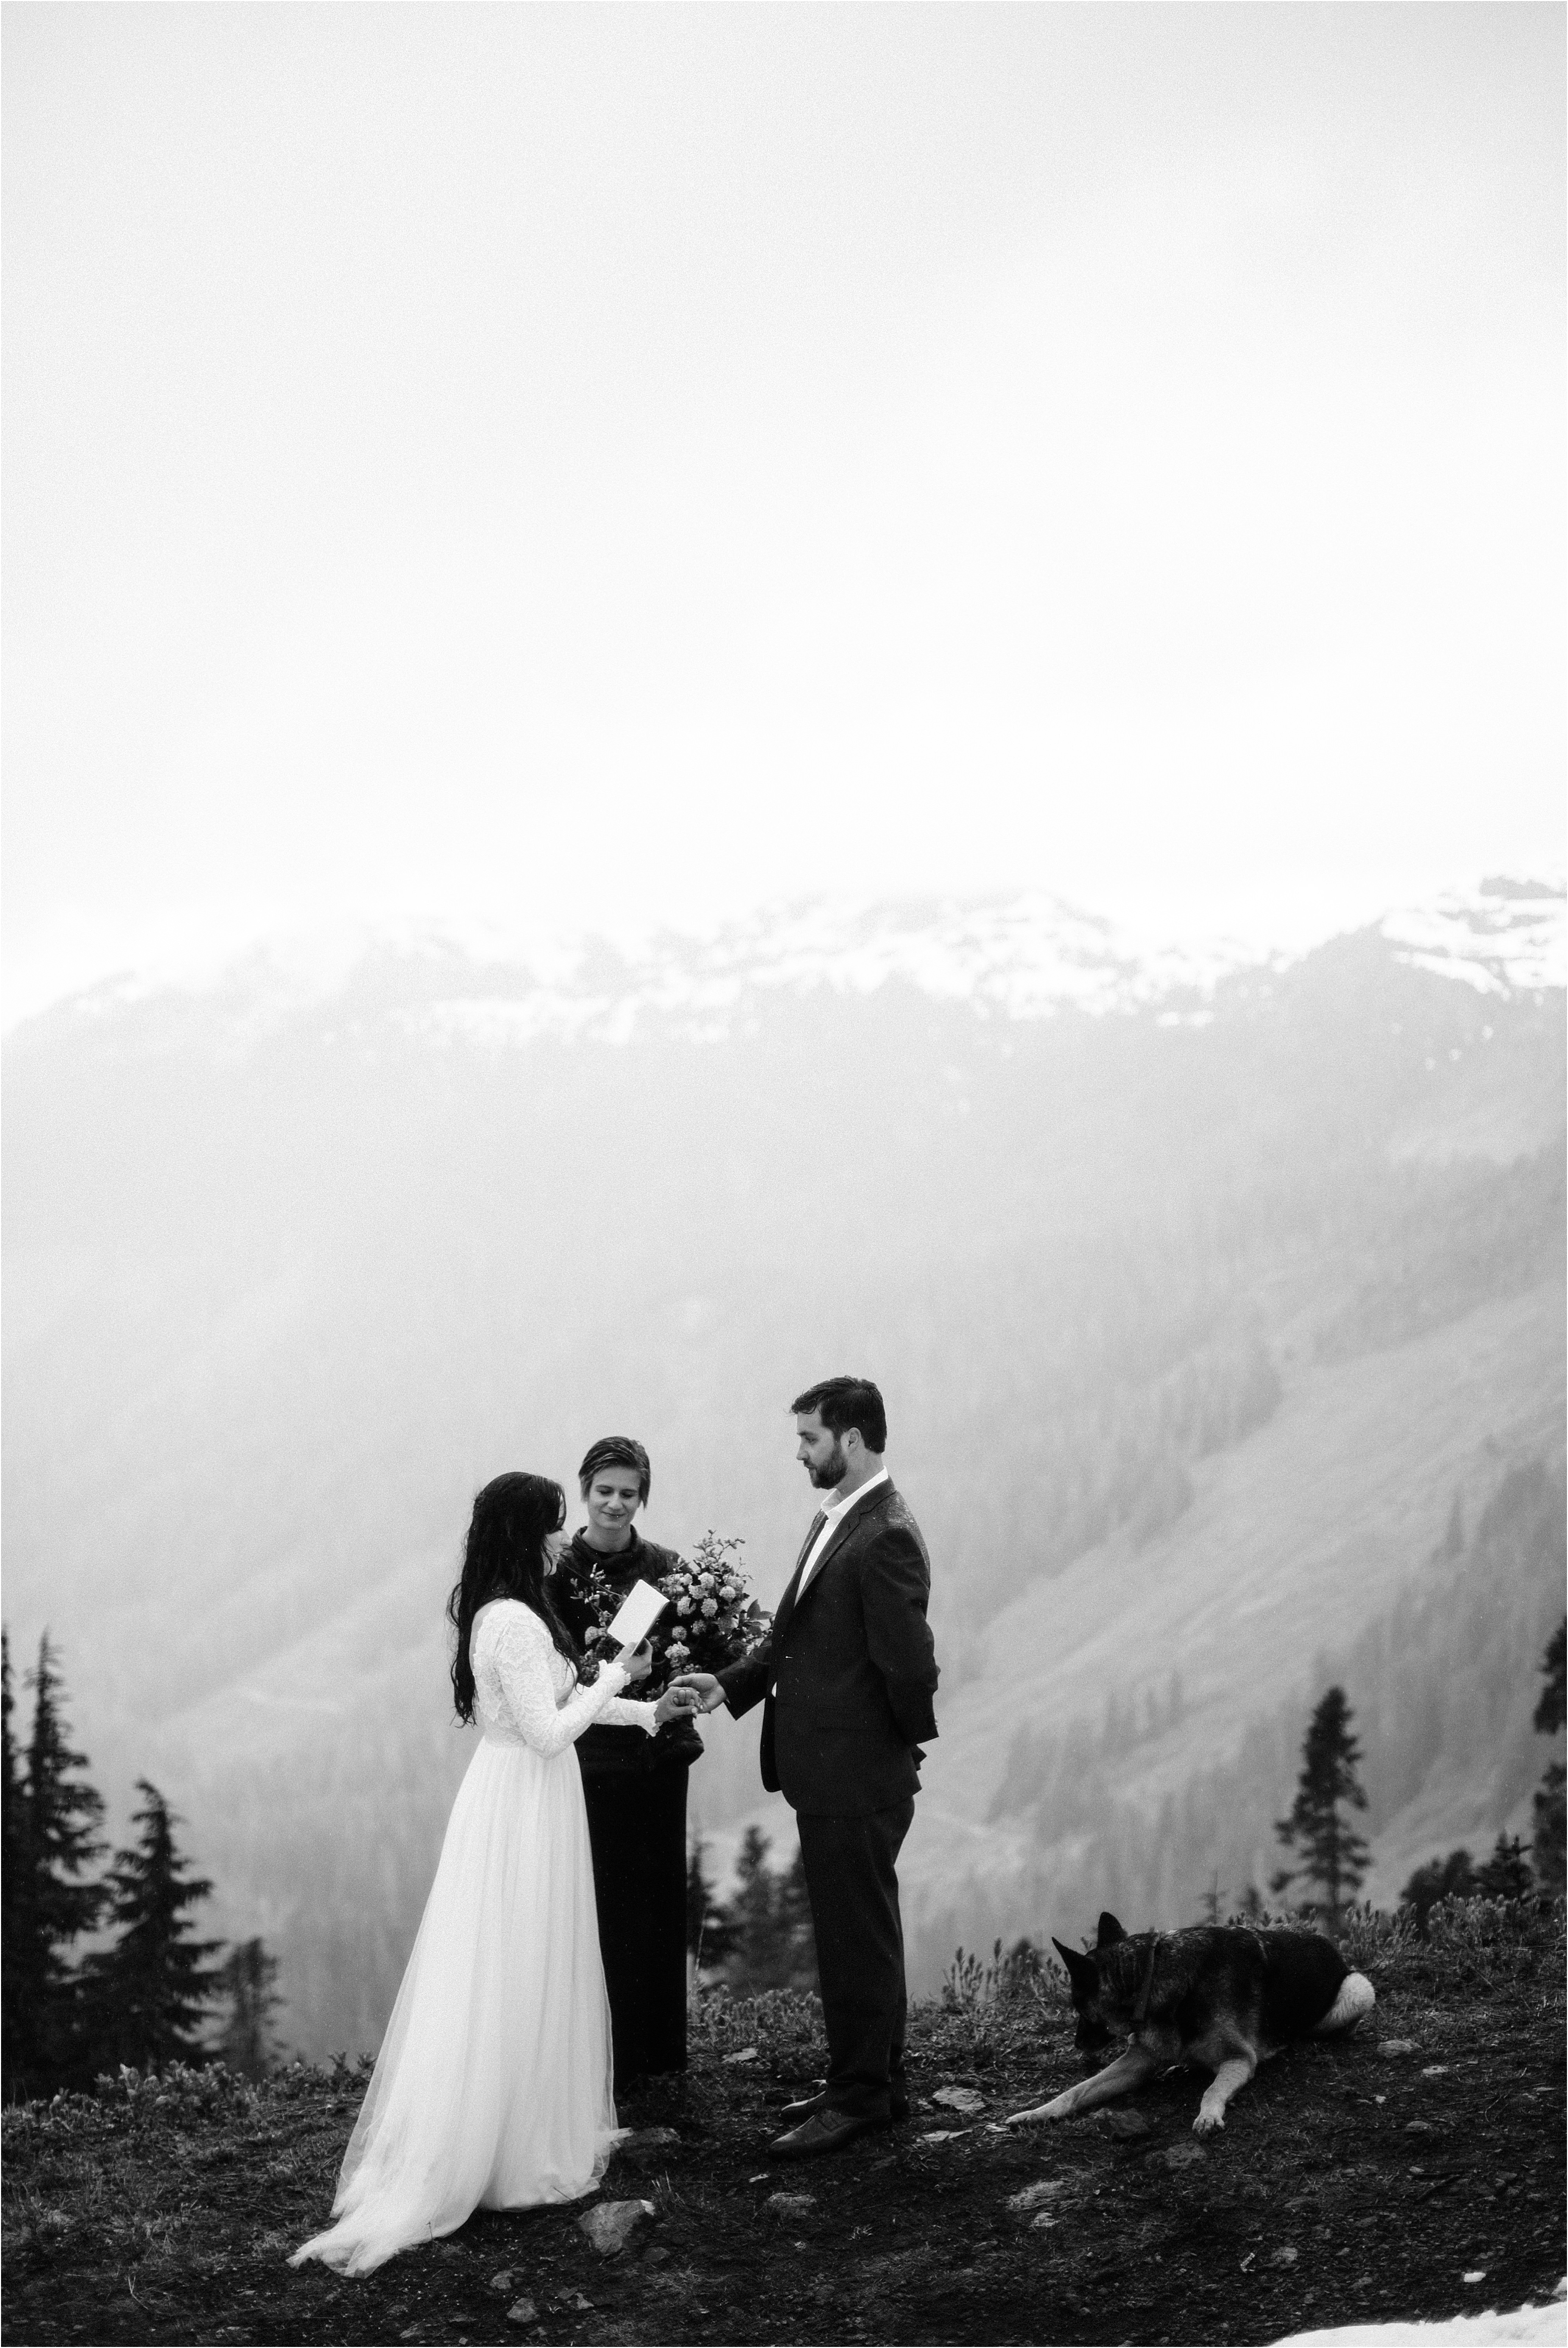 Christina & Tanner's Mt. Baker elopement ceremony. Image by Forthright Photo.